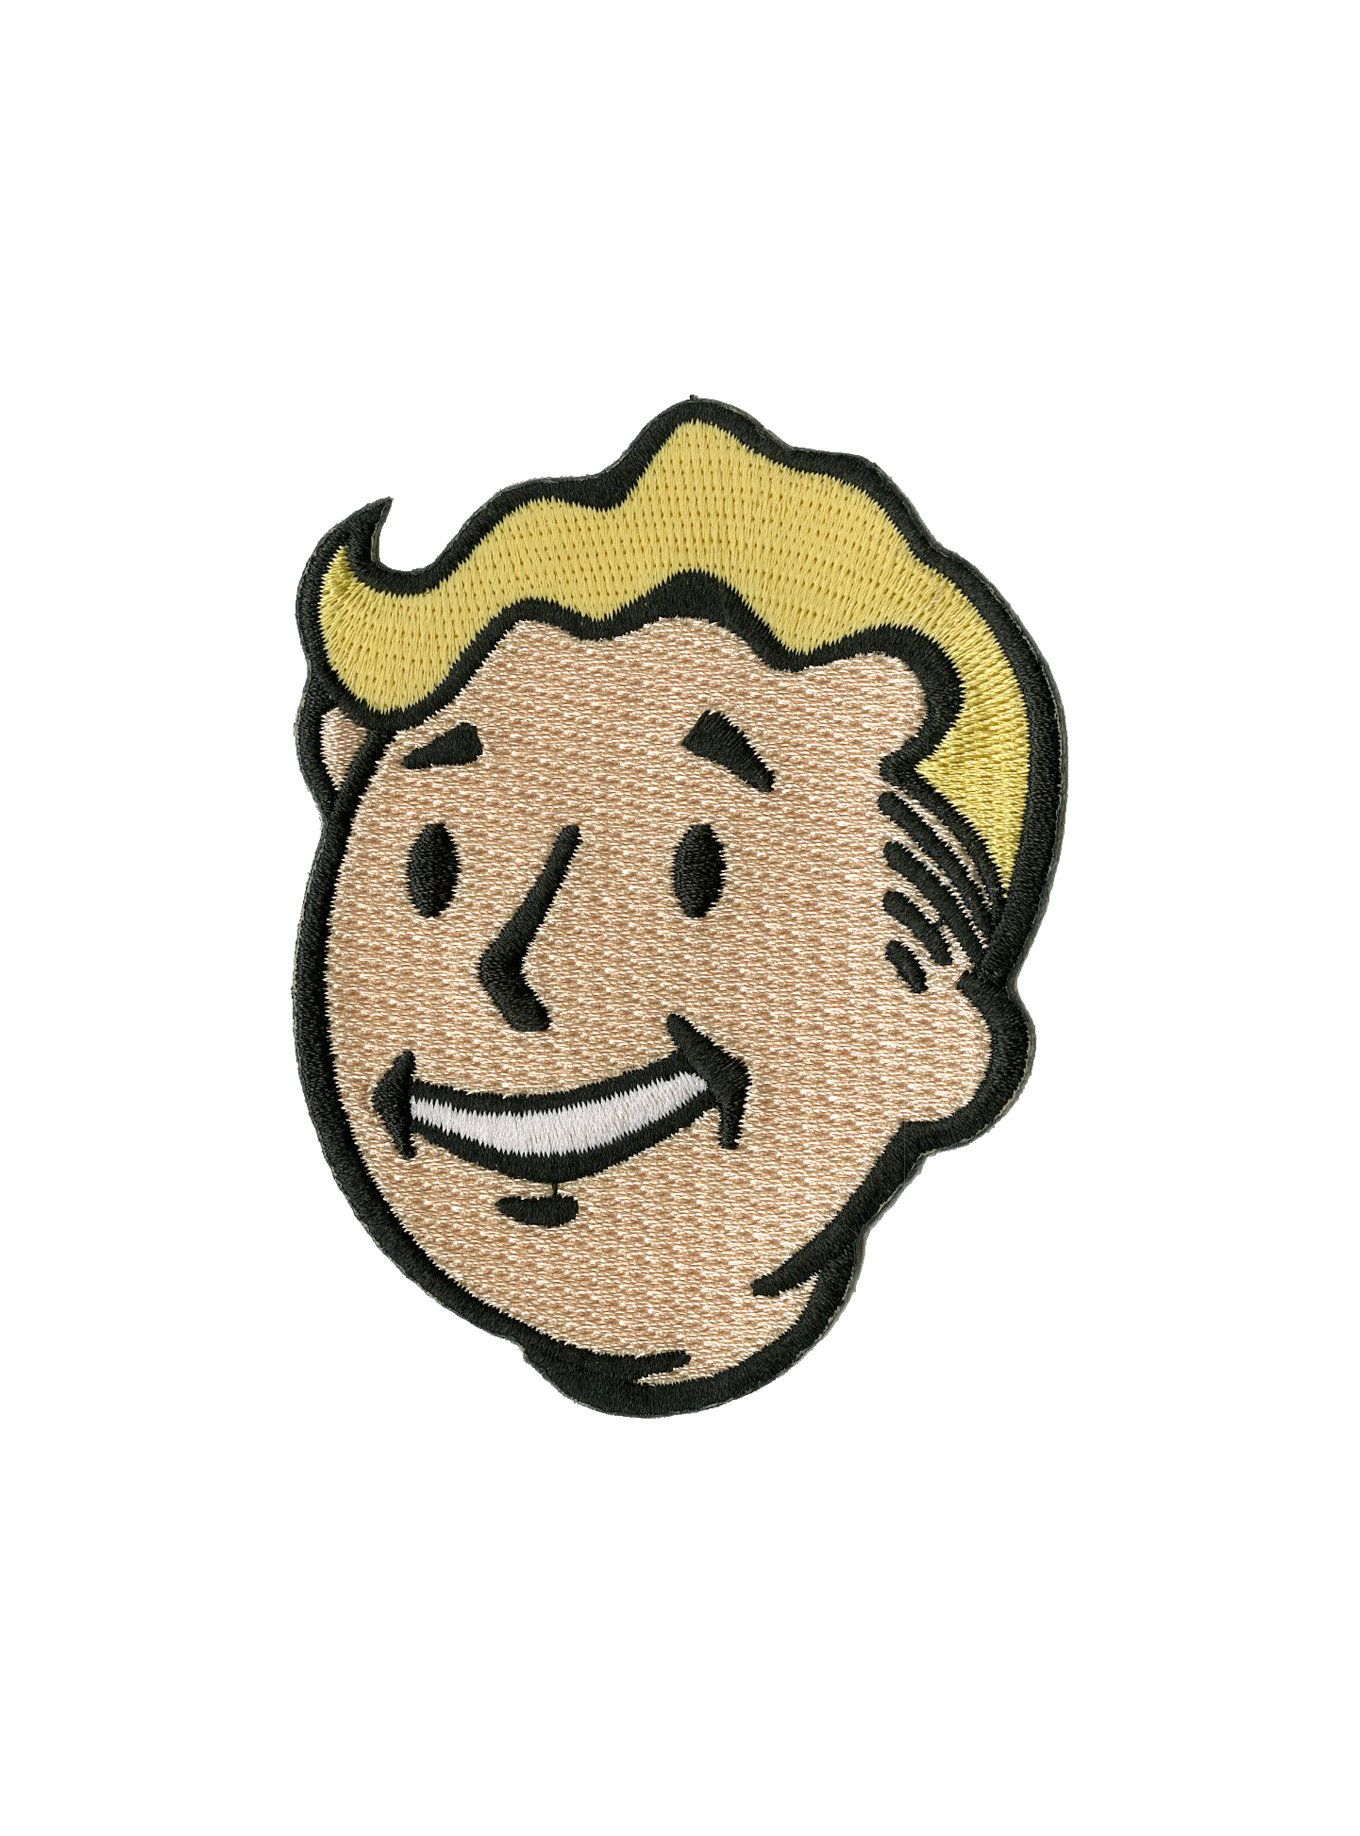 div Iron-on patch from  i Fallout   i featuring Vault Boy s head.    div  div  ul  li style